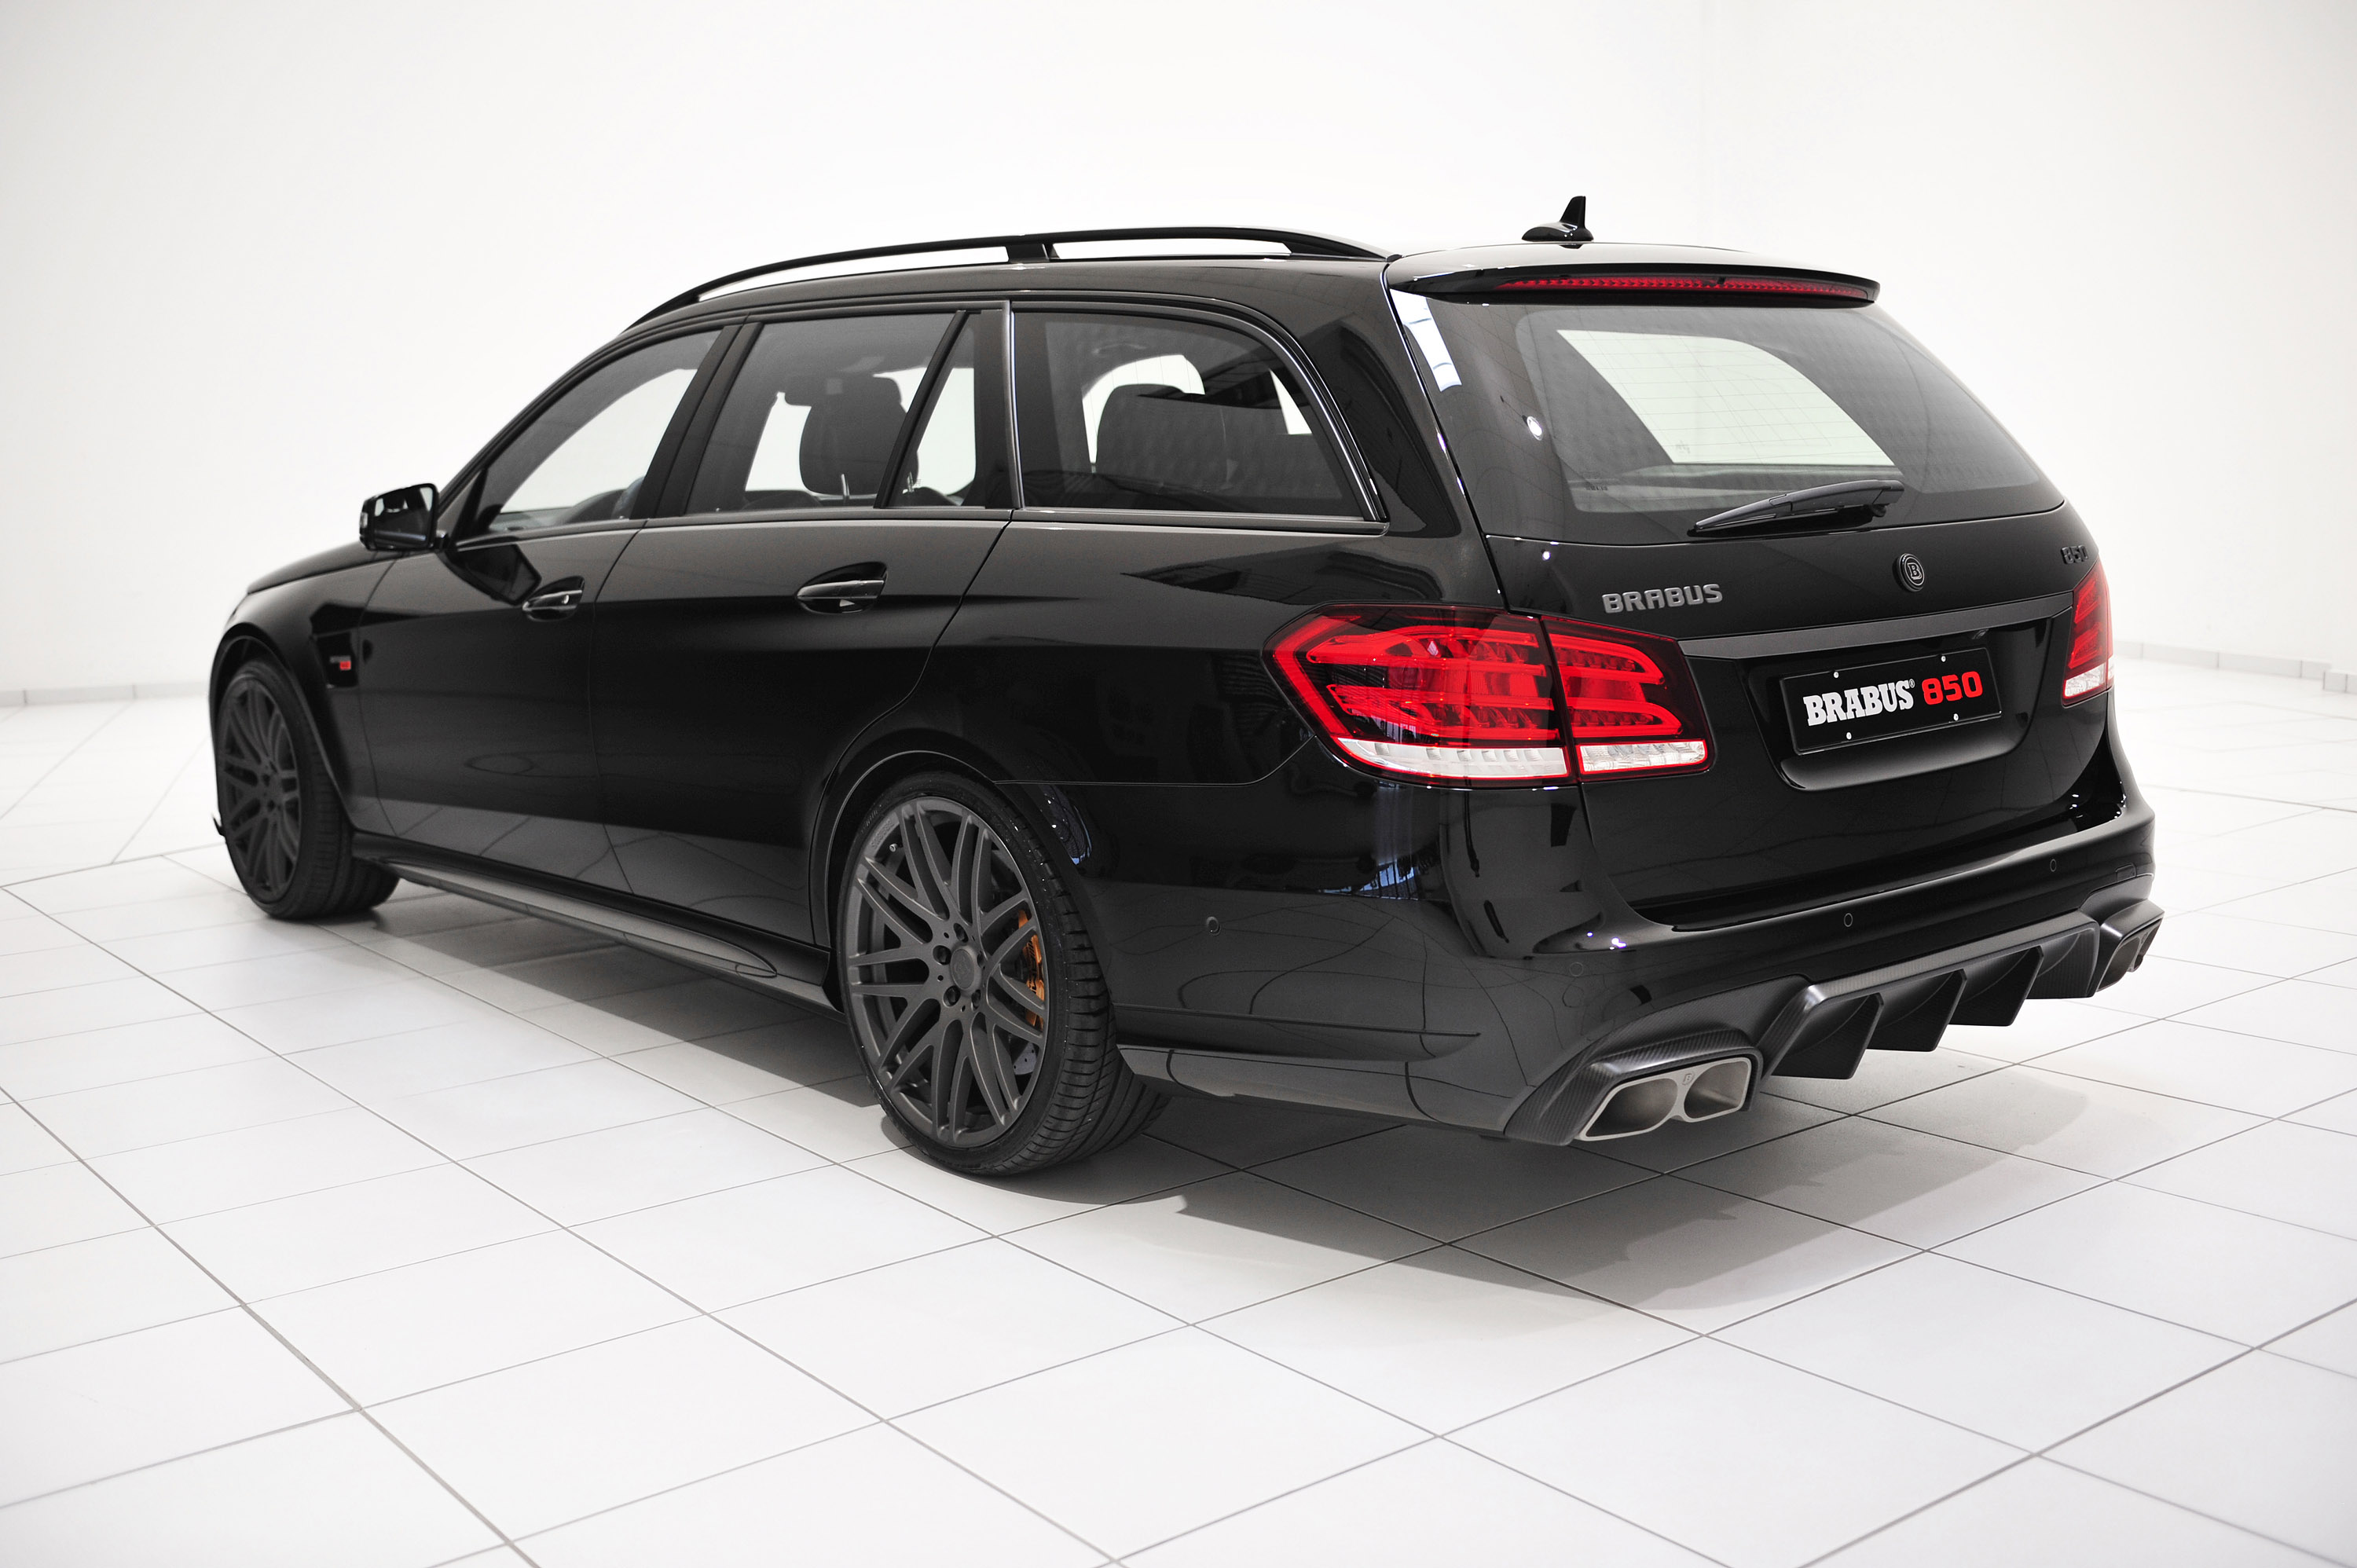 Brabus 850 6 0 biturbo mercedes benz e63 amg picture 91890 for Mercedes benz brabus amg